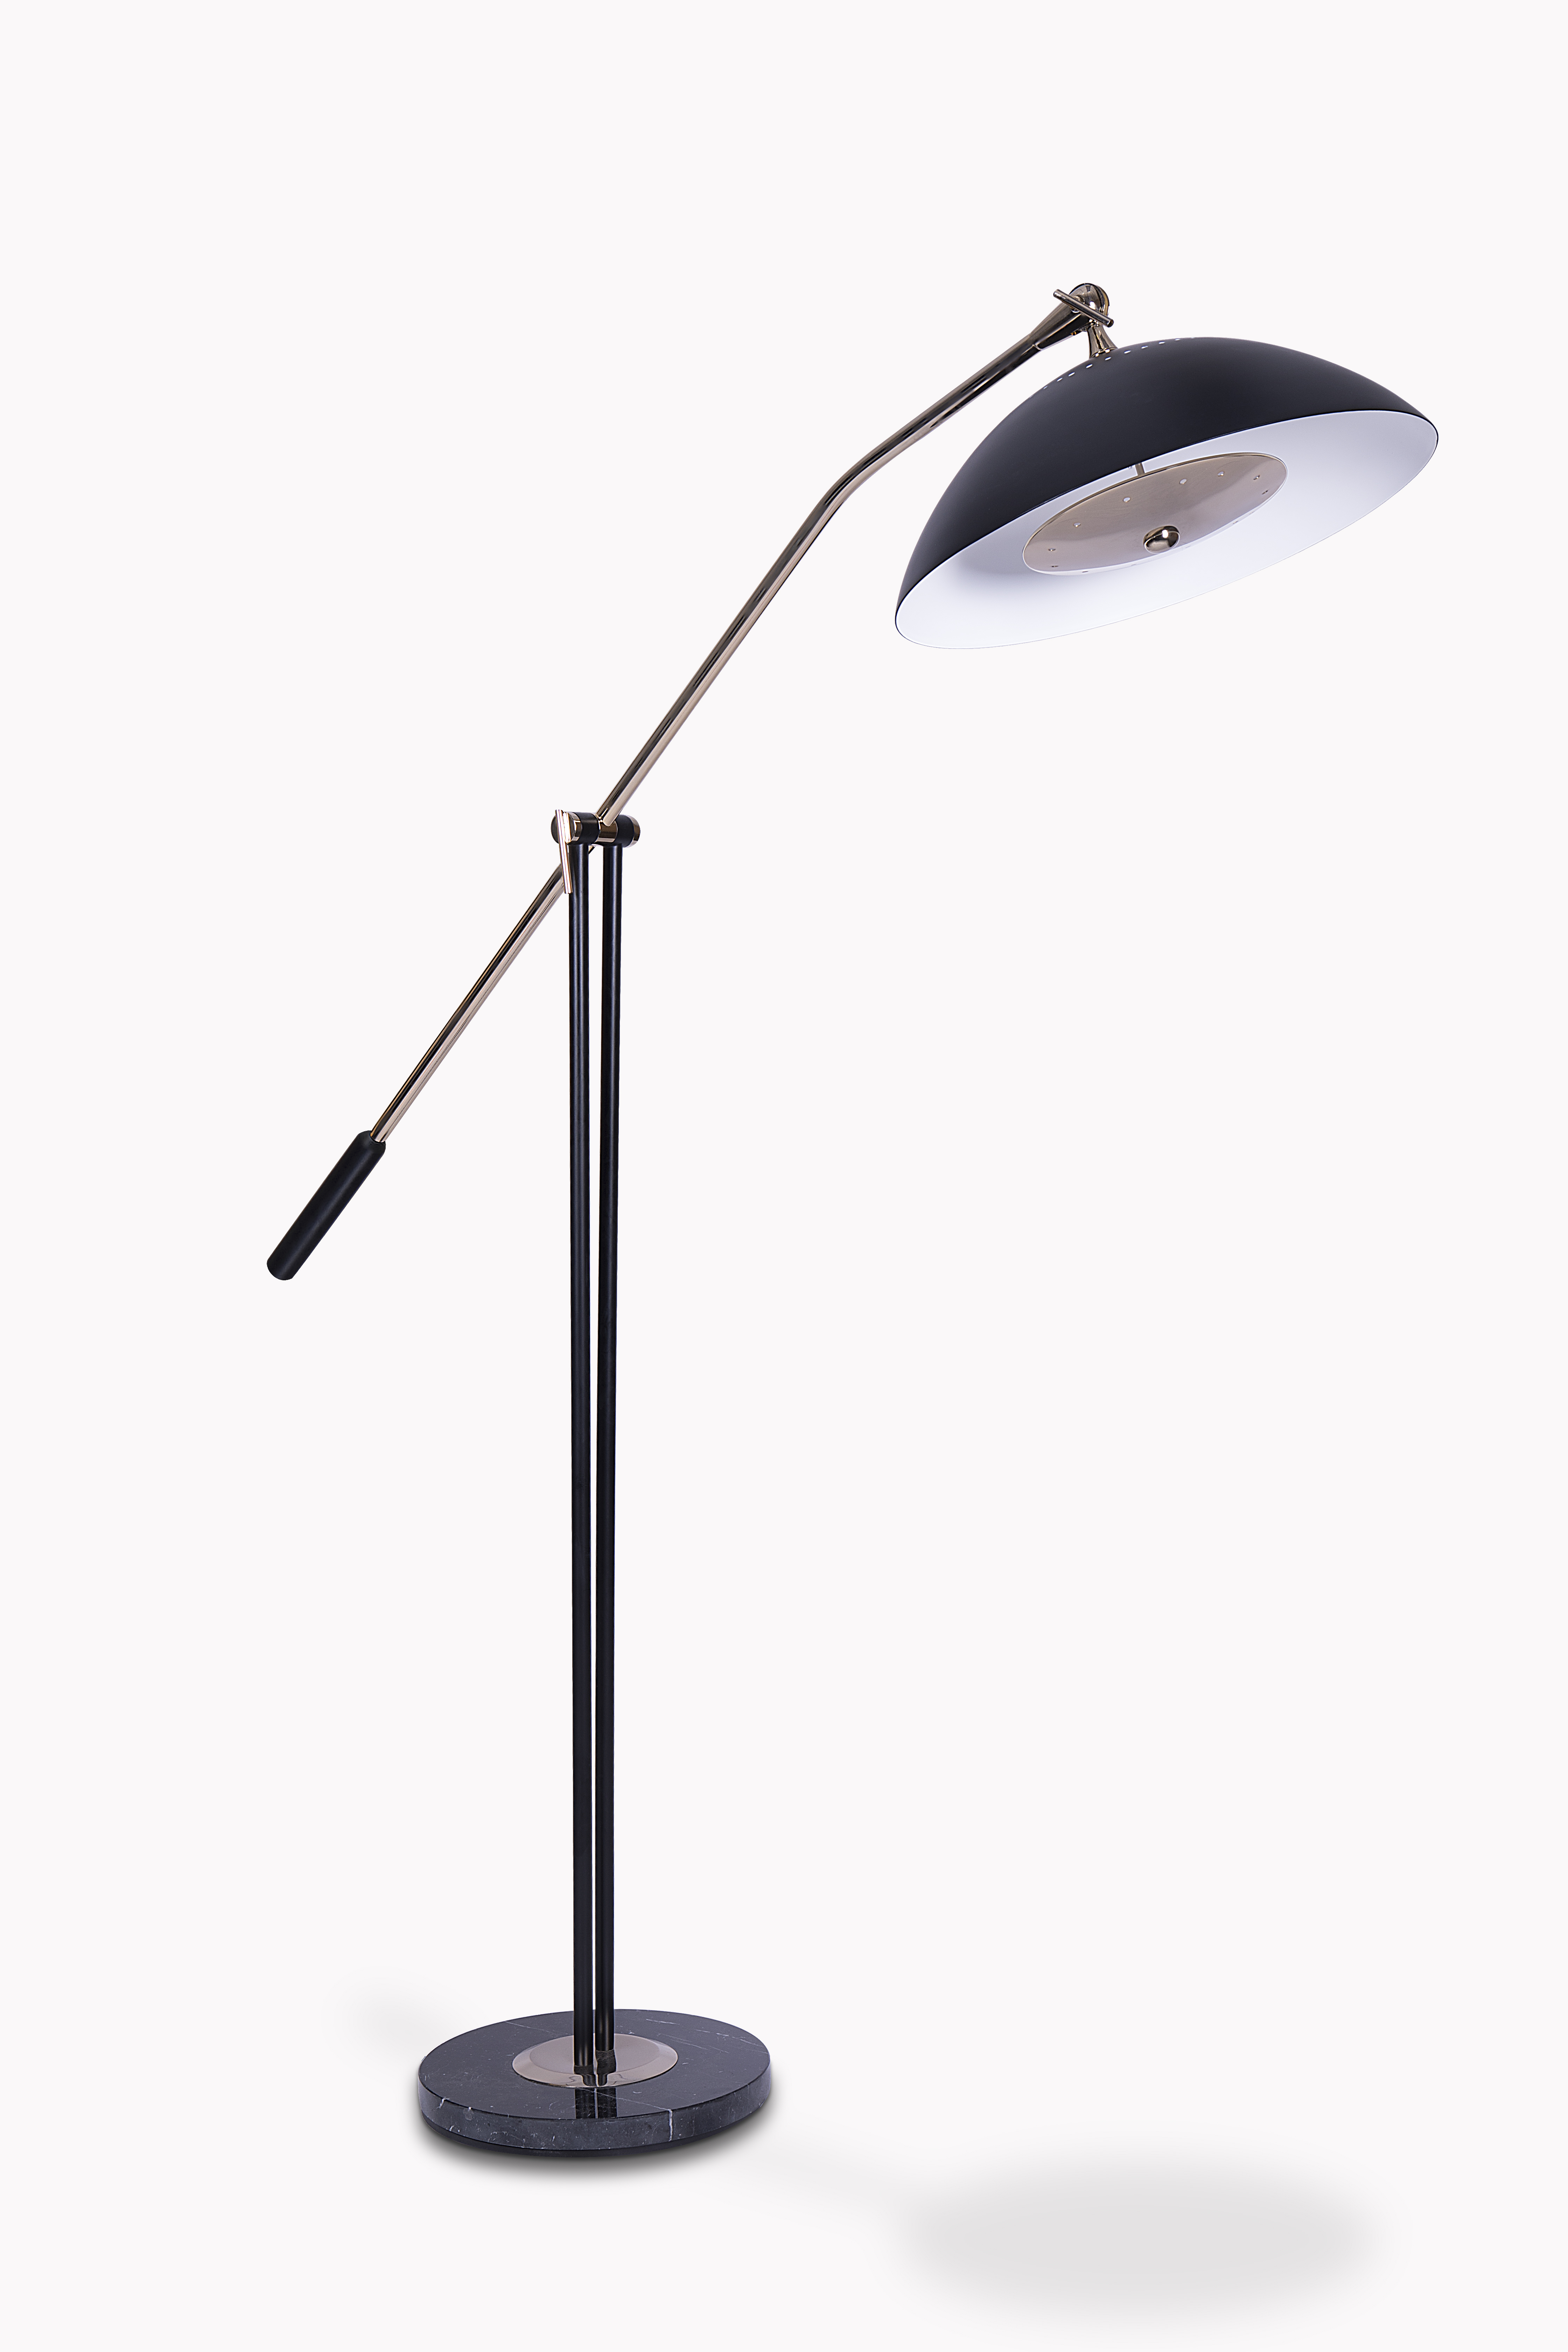 Get The Best Ambience With Mid-Century Floor Lamps! mid-century floor lamps Get The Best Ambience With Mid-Century Floor Lamps! Get The Best Ambience With Mid Century Floor Lamps11